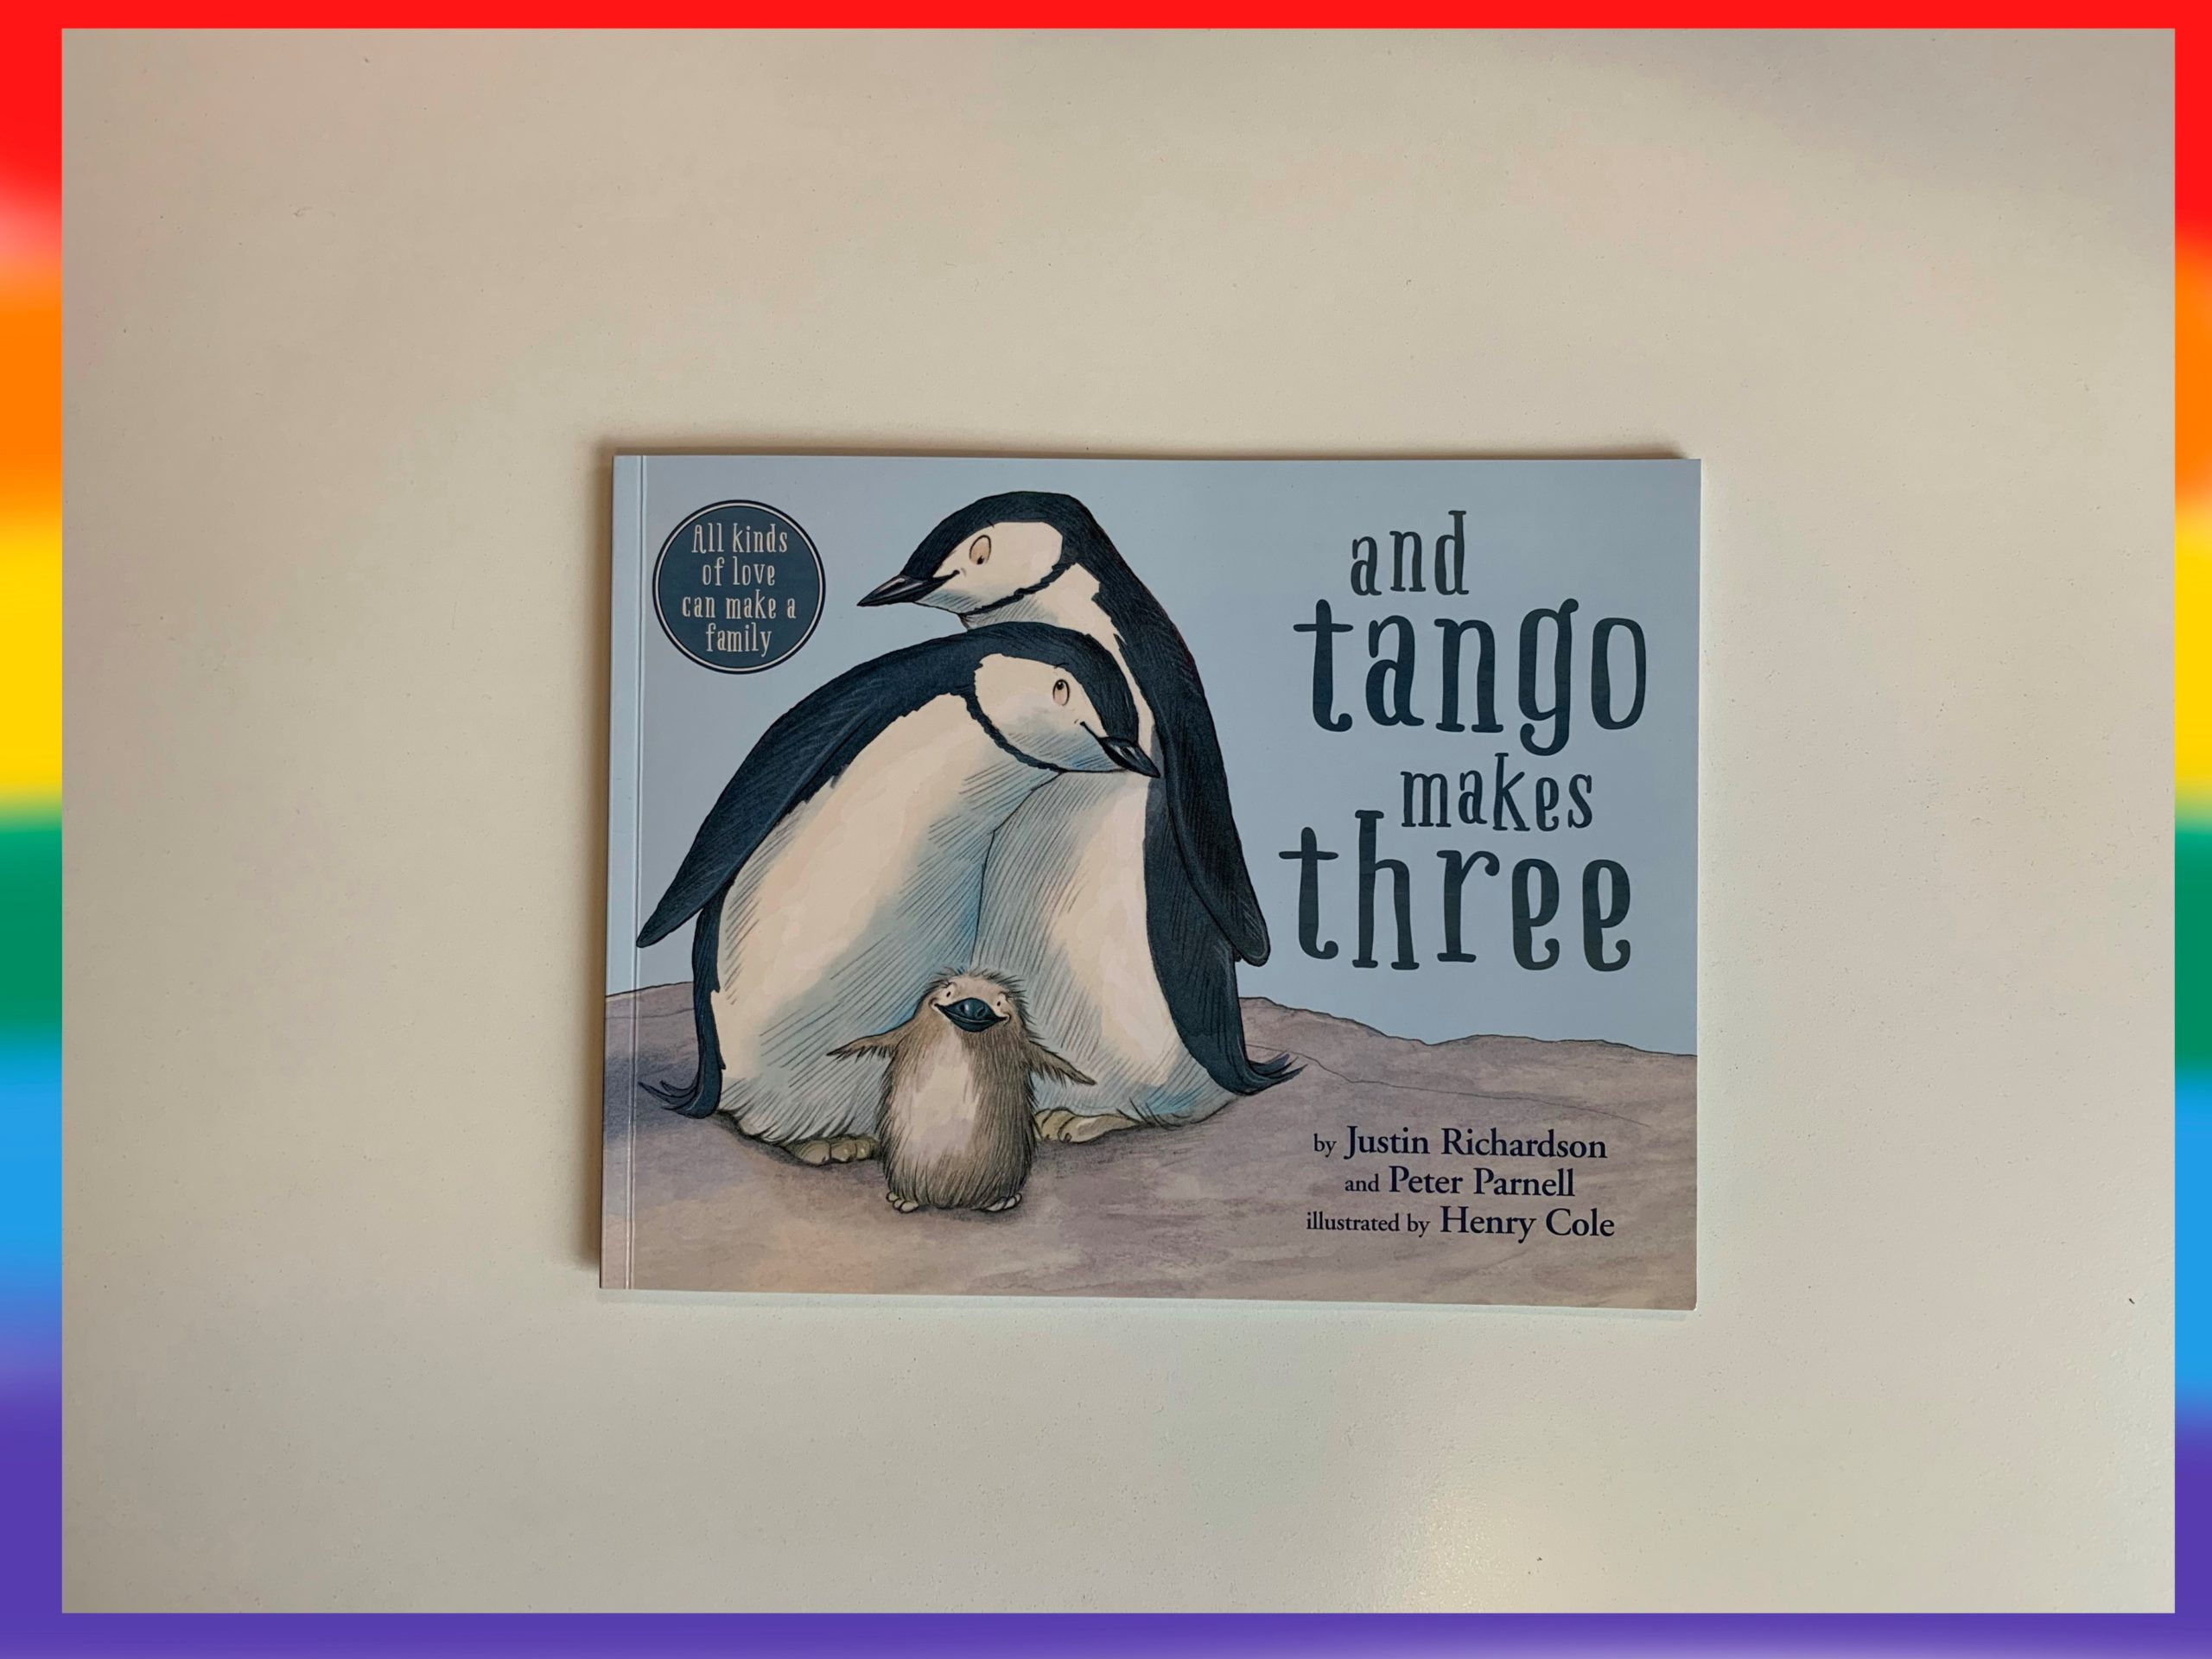 image of children's book And Tango Makes Three